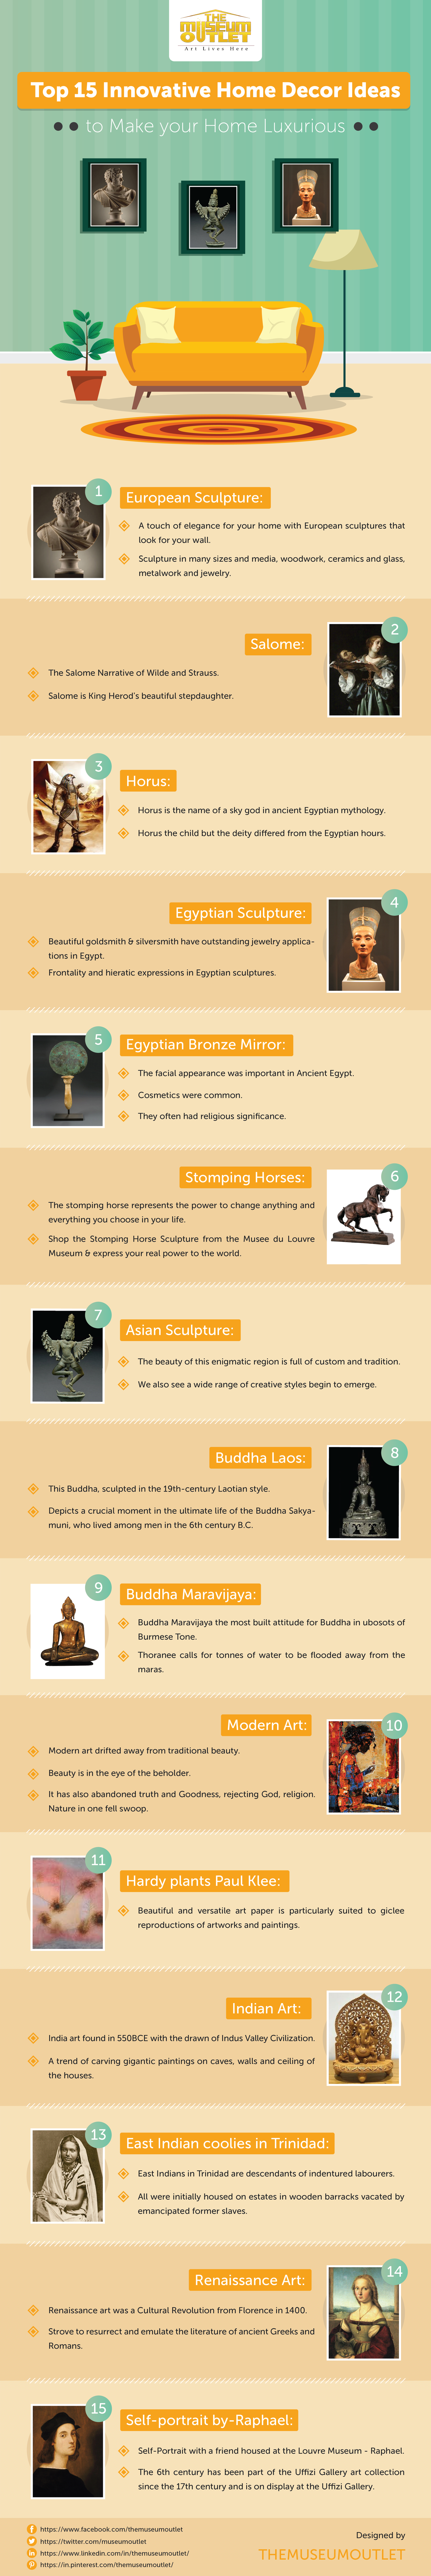 Luxurious Looking Homes on a Budget: 10 Amazing Tips - Infographic